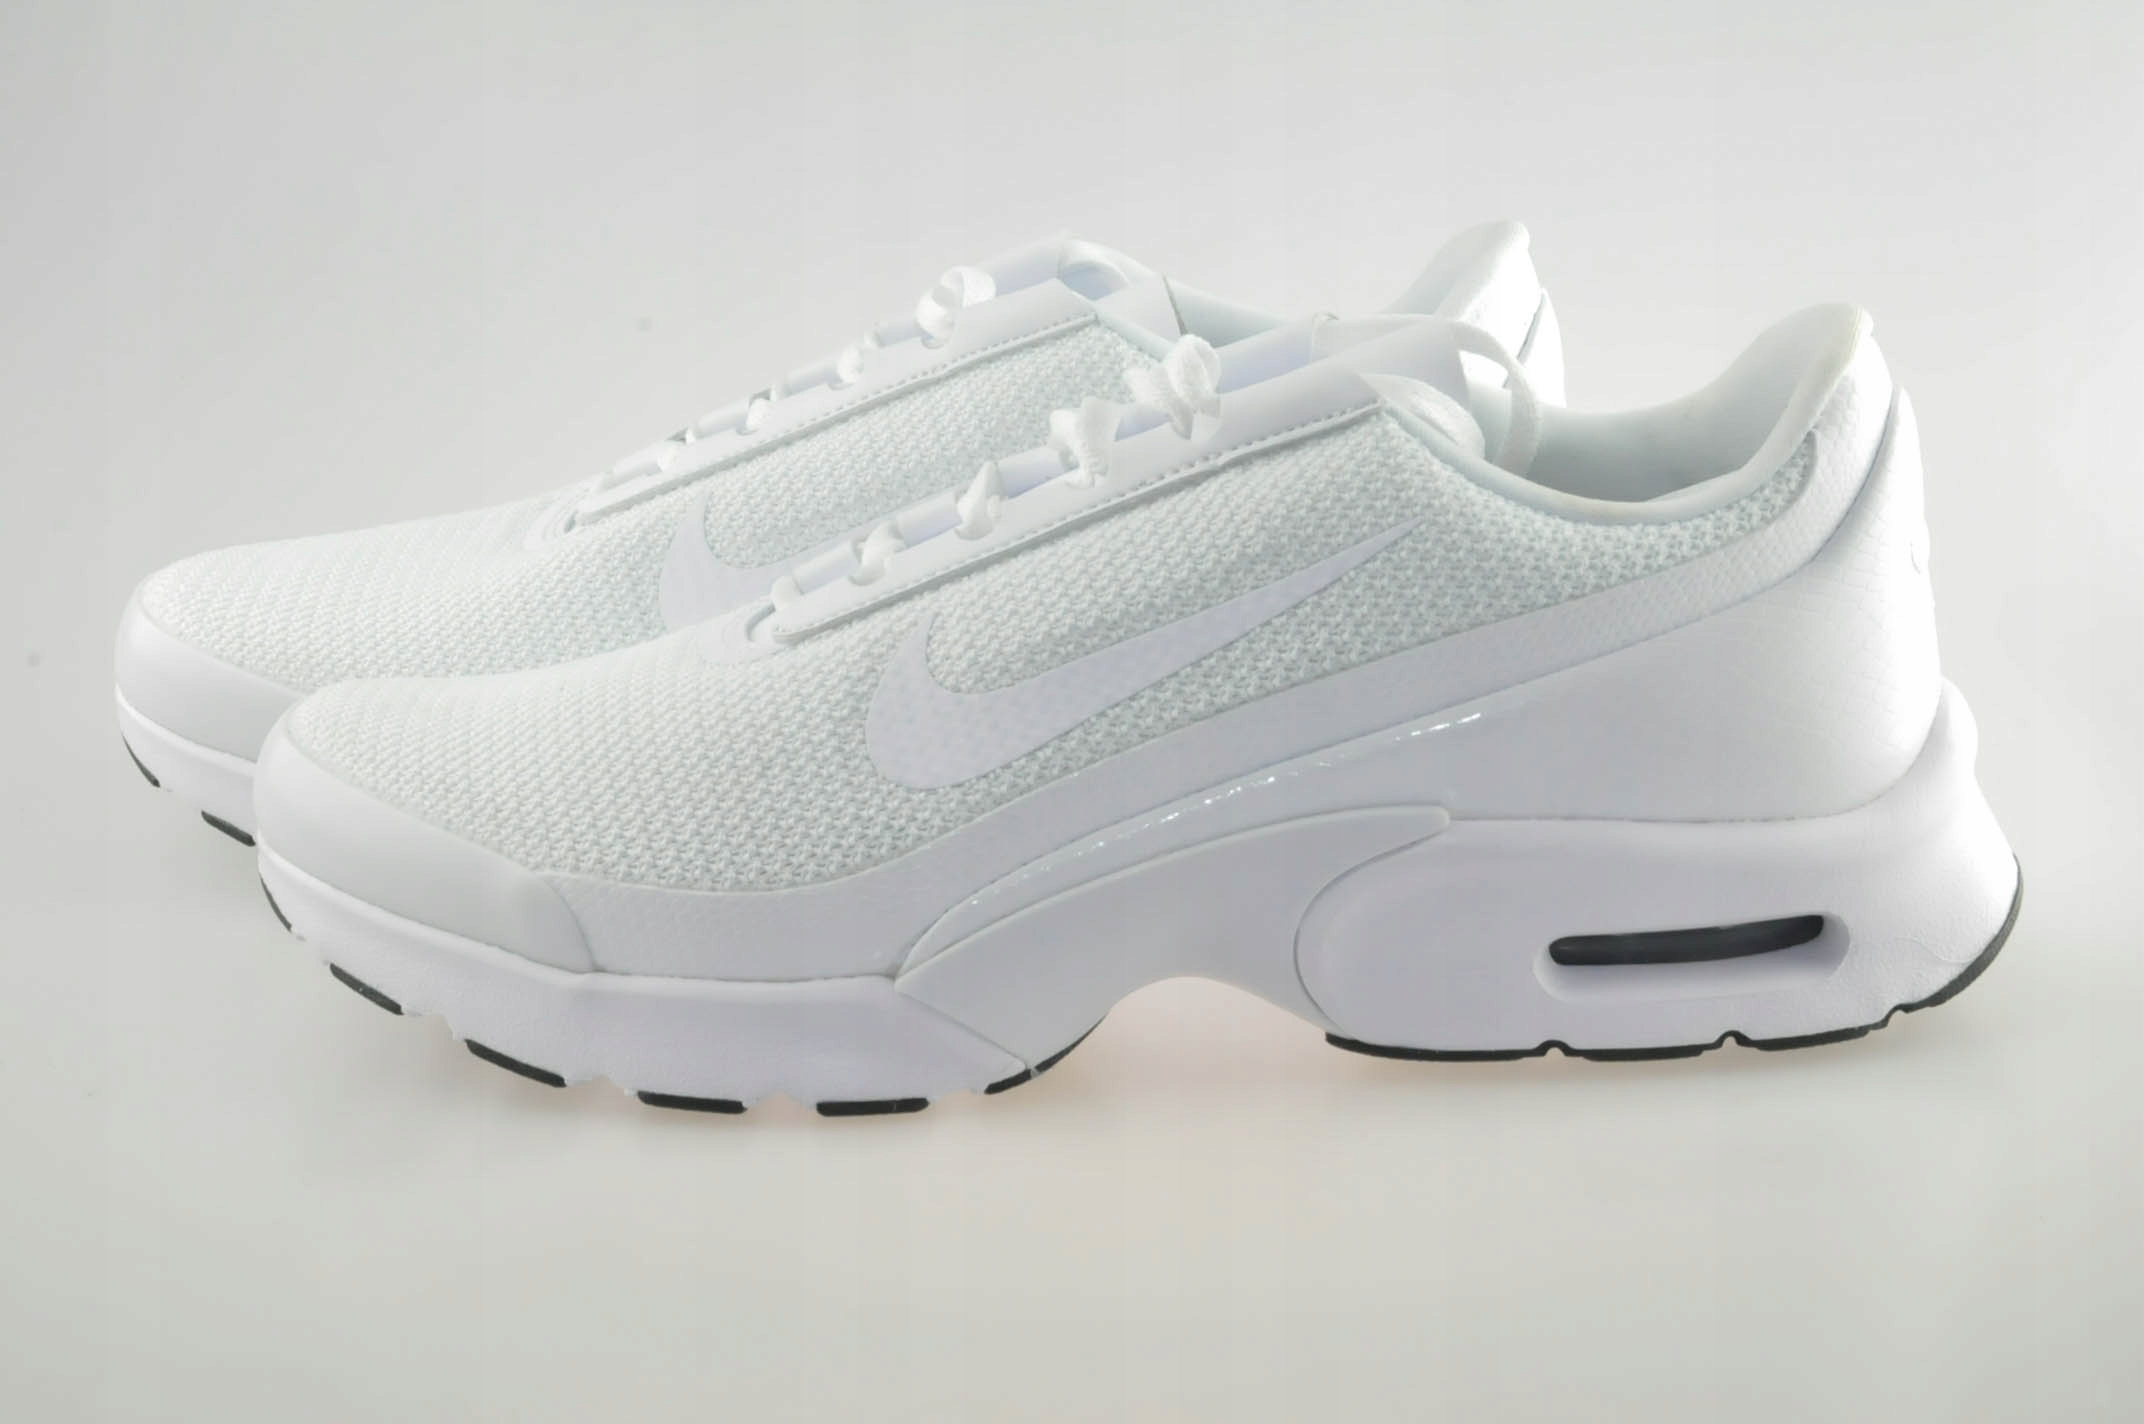 fb5e9585 Buty NIKE AIR MAX JEWELL - Sneakersy r.41 - 7502798586 - oficjalne ...